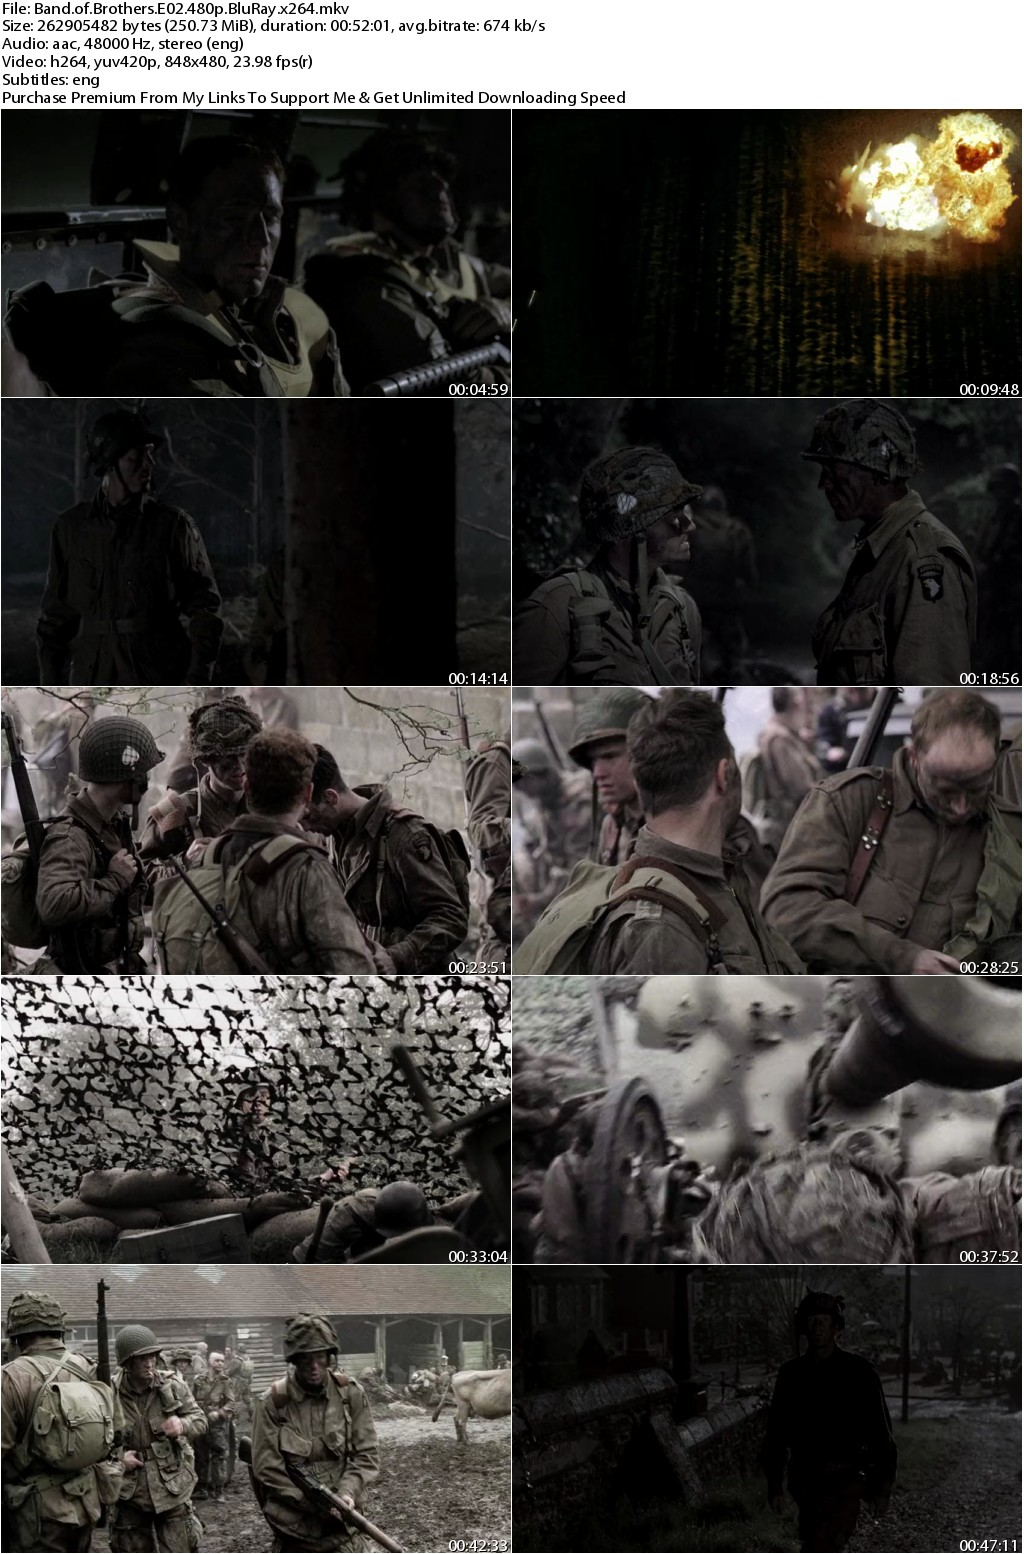 Band of Brothers Season 01 Complete 480p BluRay x264-DLW